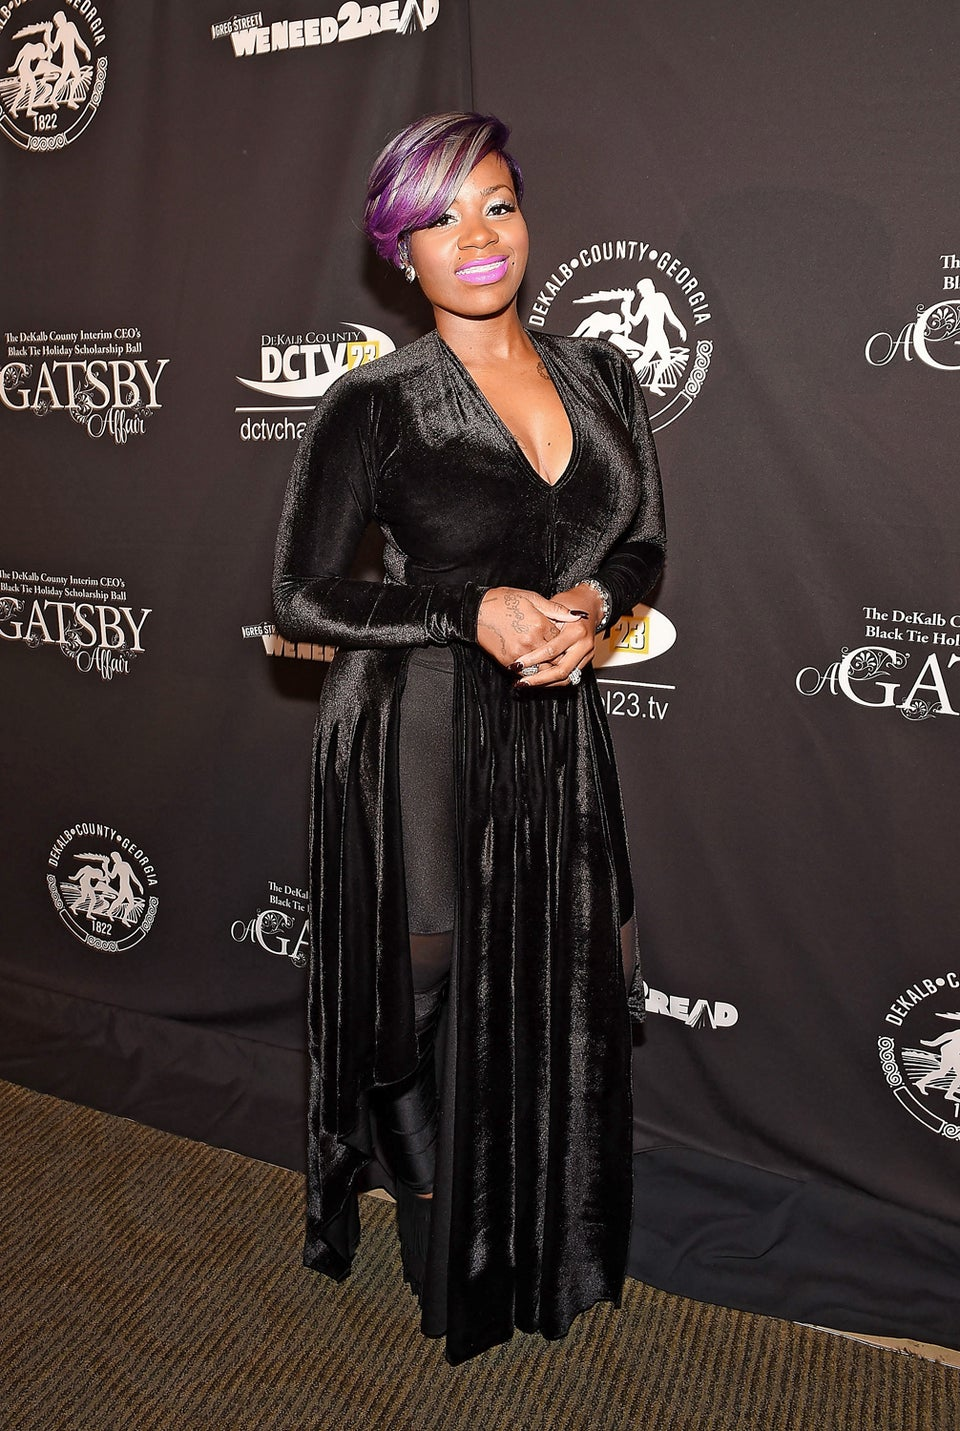 The Wait is Almost Over! Fantasia Says She's Ready to Release New Music